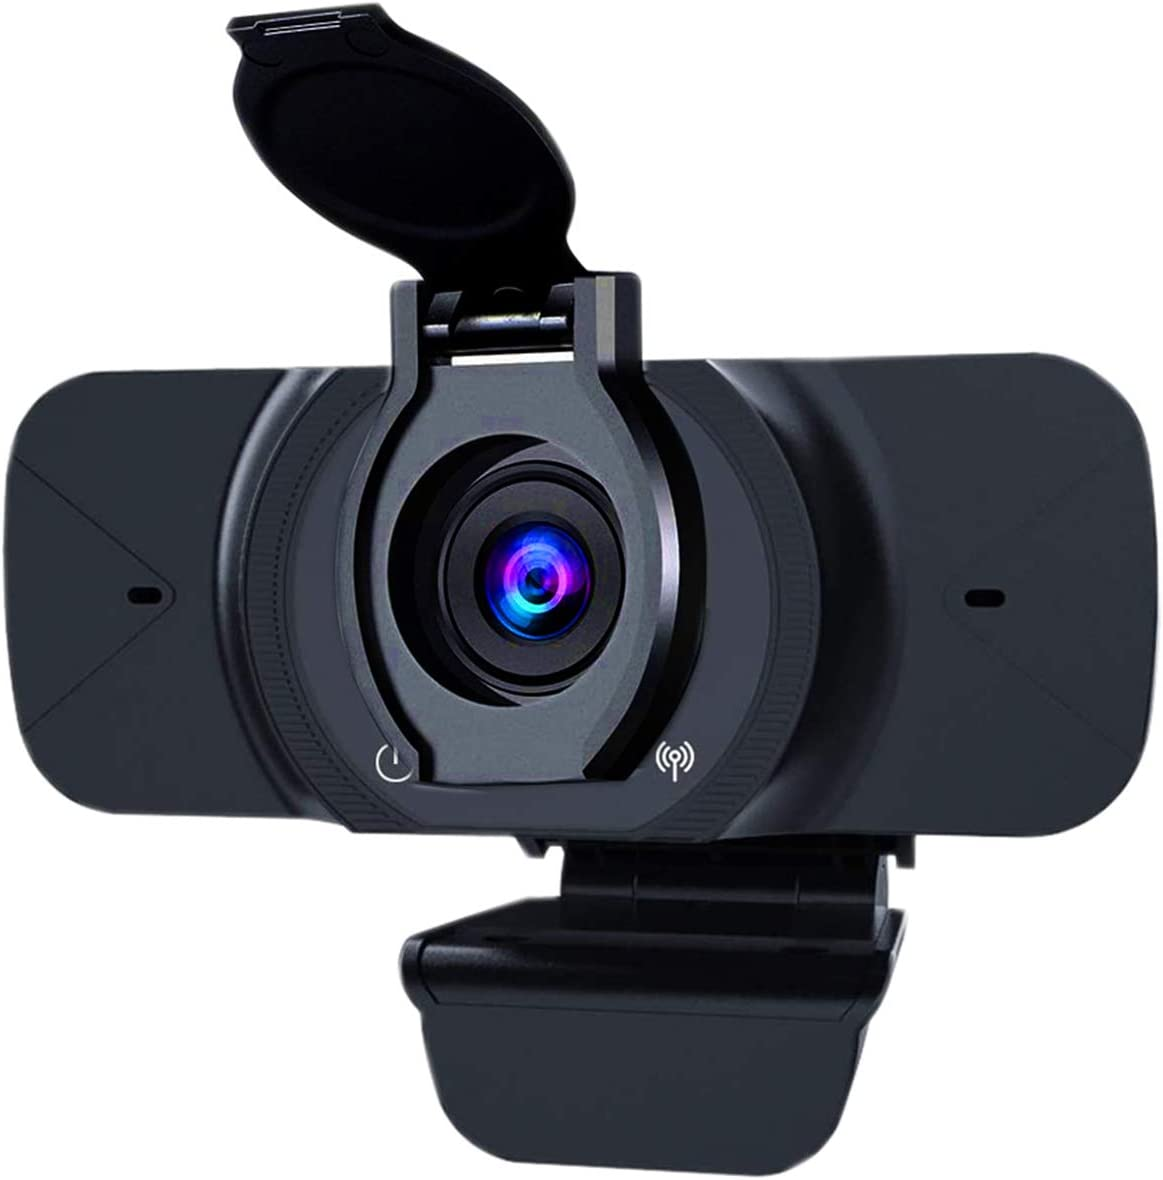 AIRIVO 1080P Webcam with Microphone & Privacy Cover, USB Camera Streaming Webcam for PC Desktop Computers Laptop, Gaming,Conference, Study, Video Calling